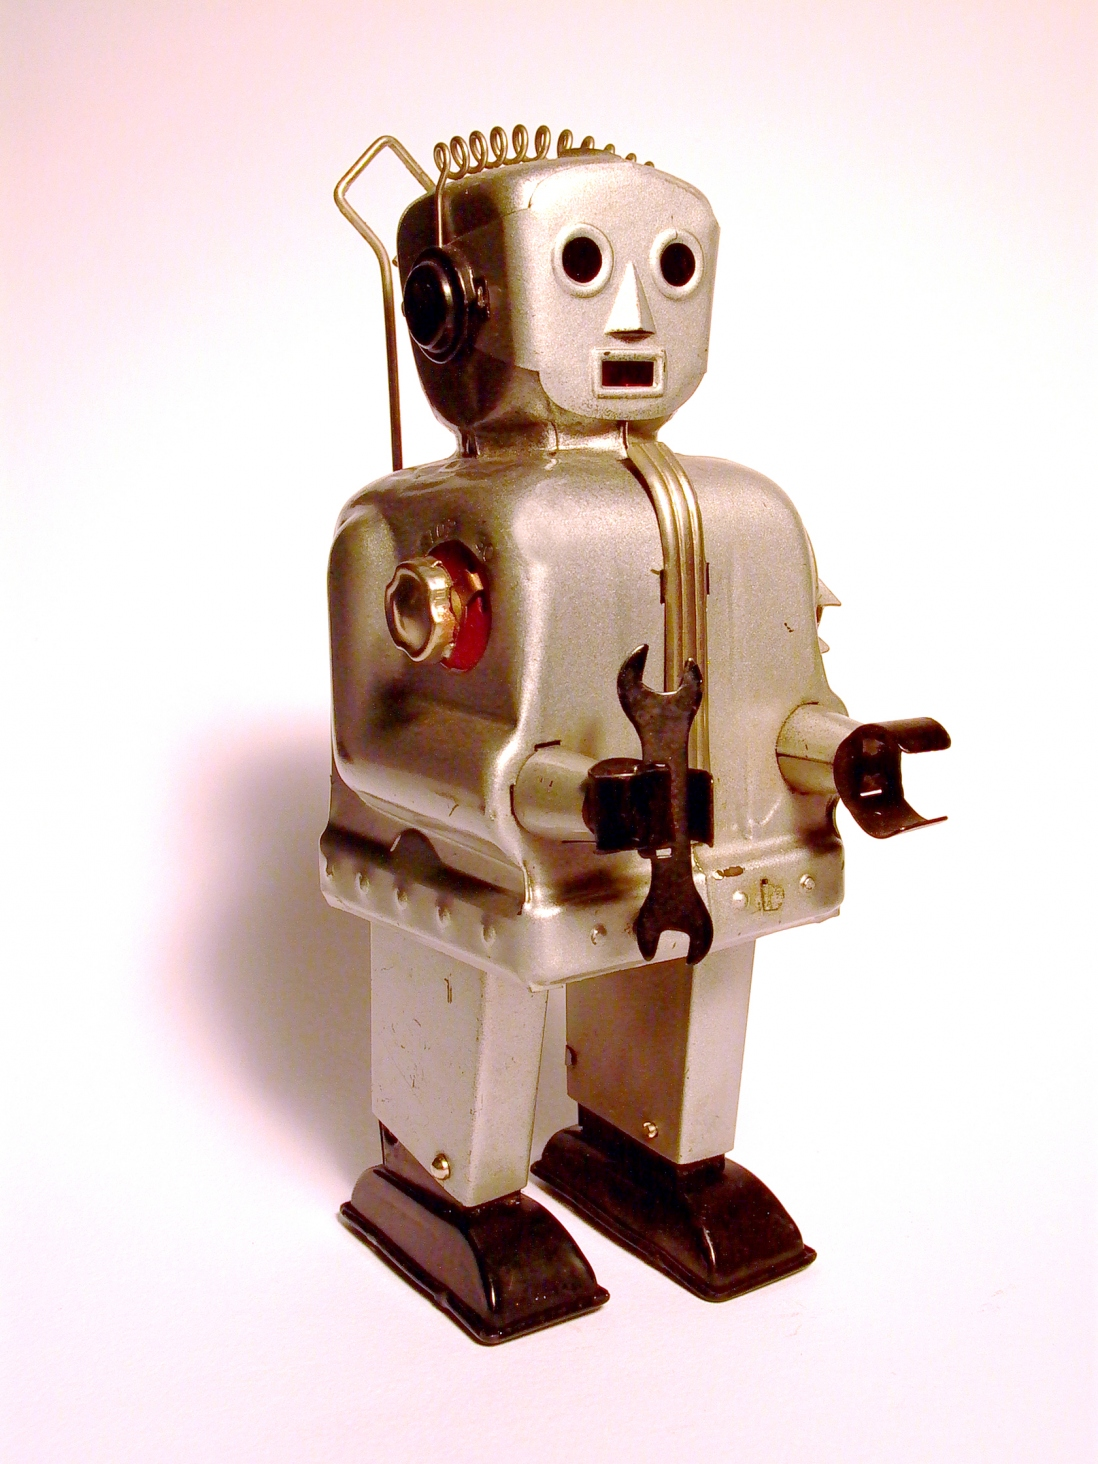 A silver tin robot armed with spanner